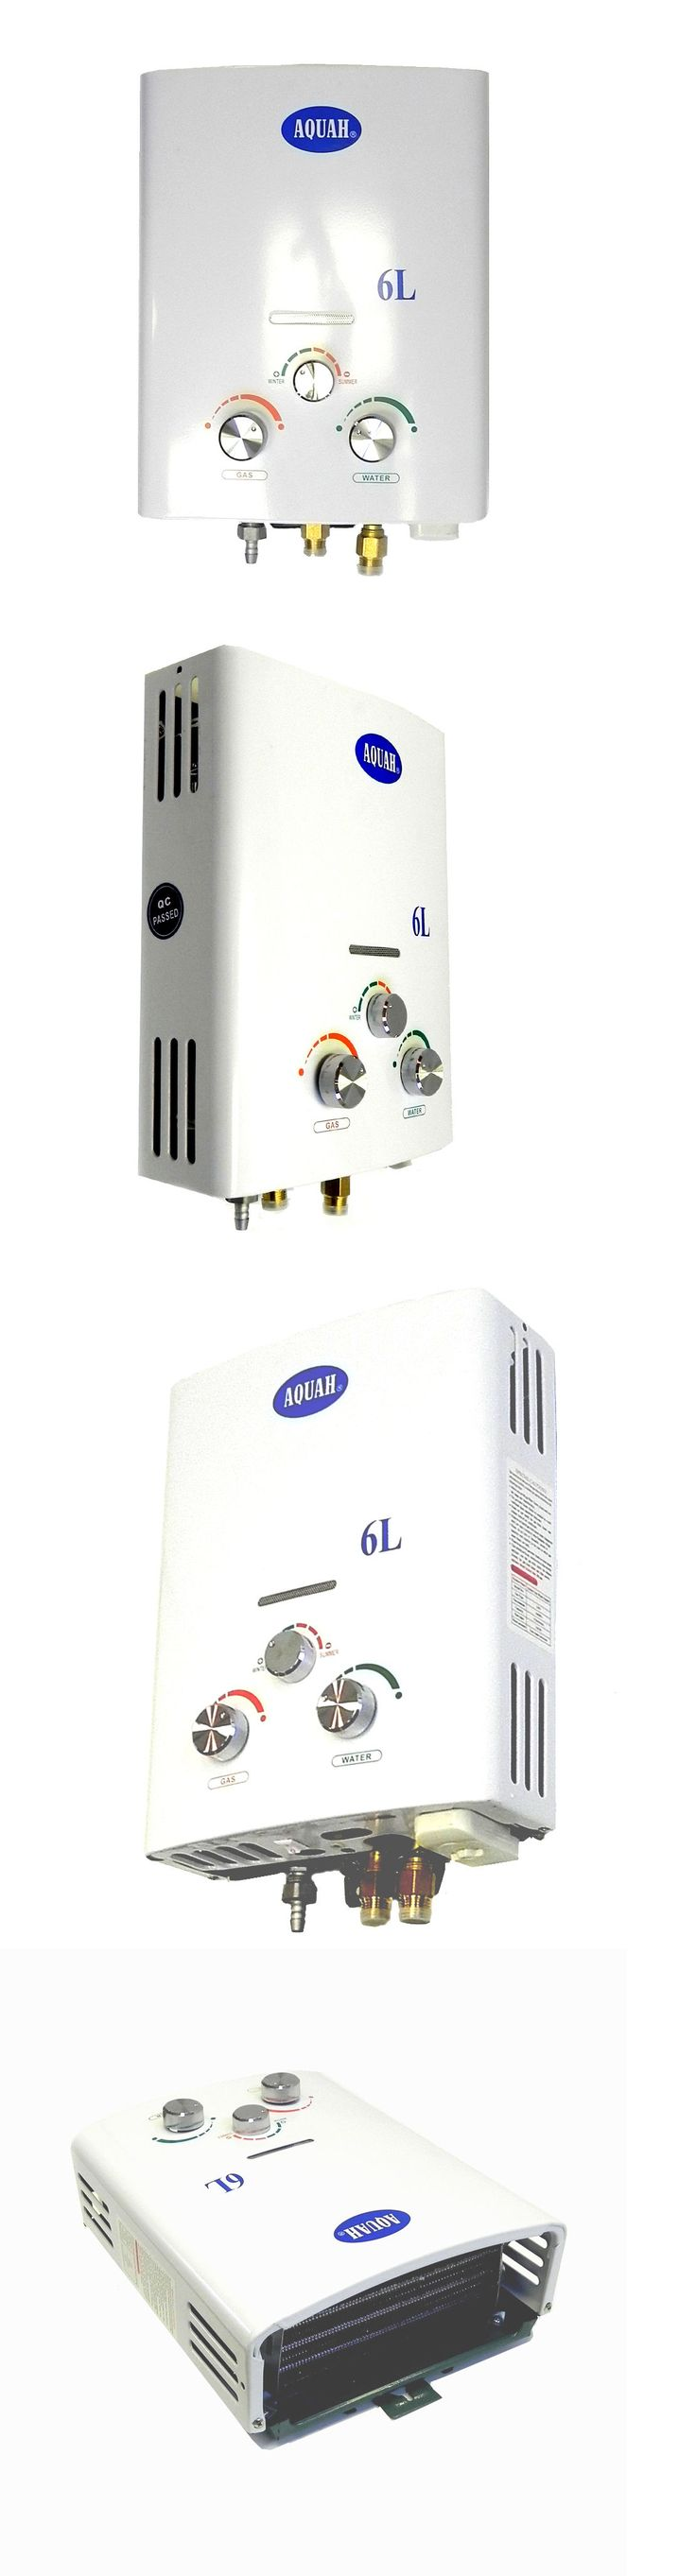 Tankless Water Heaters 115967: Aquah® Outdoor Portable Propane Tankless Gas Water Heater 6L Up To 2.0 Gpm -> BUY IT NOW ONLY: $99.5 on eBay!